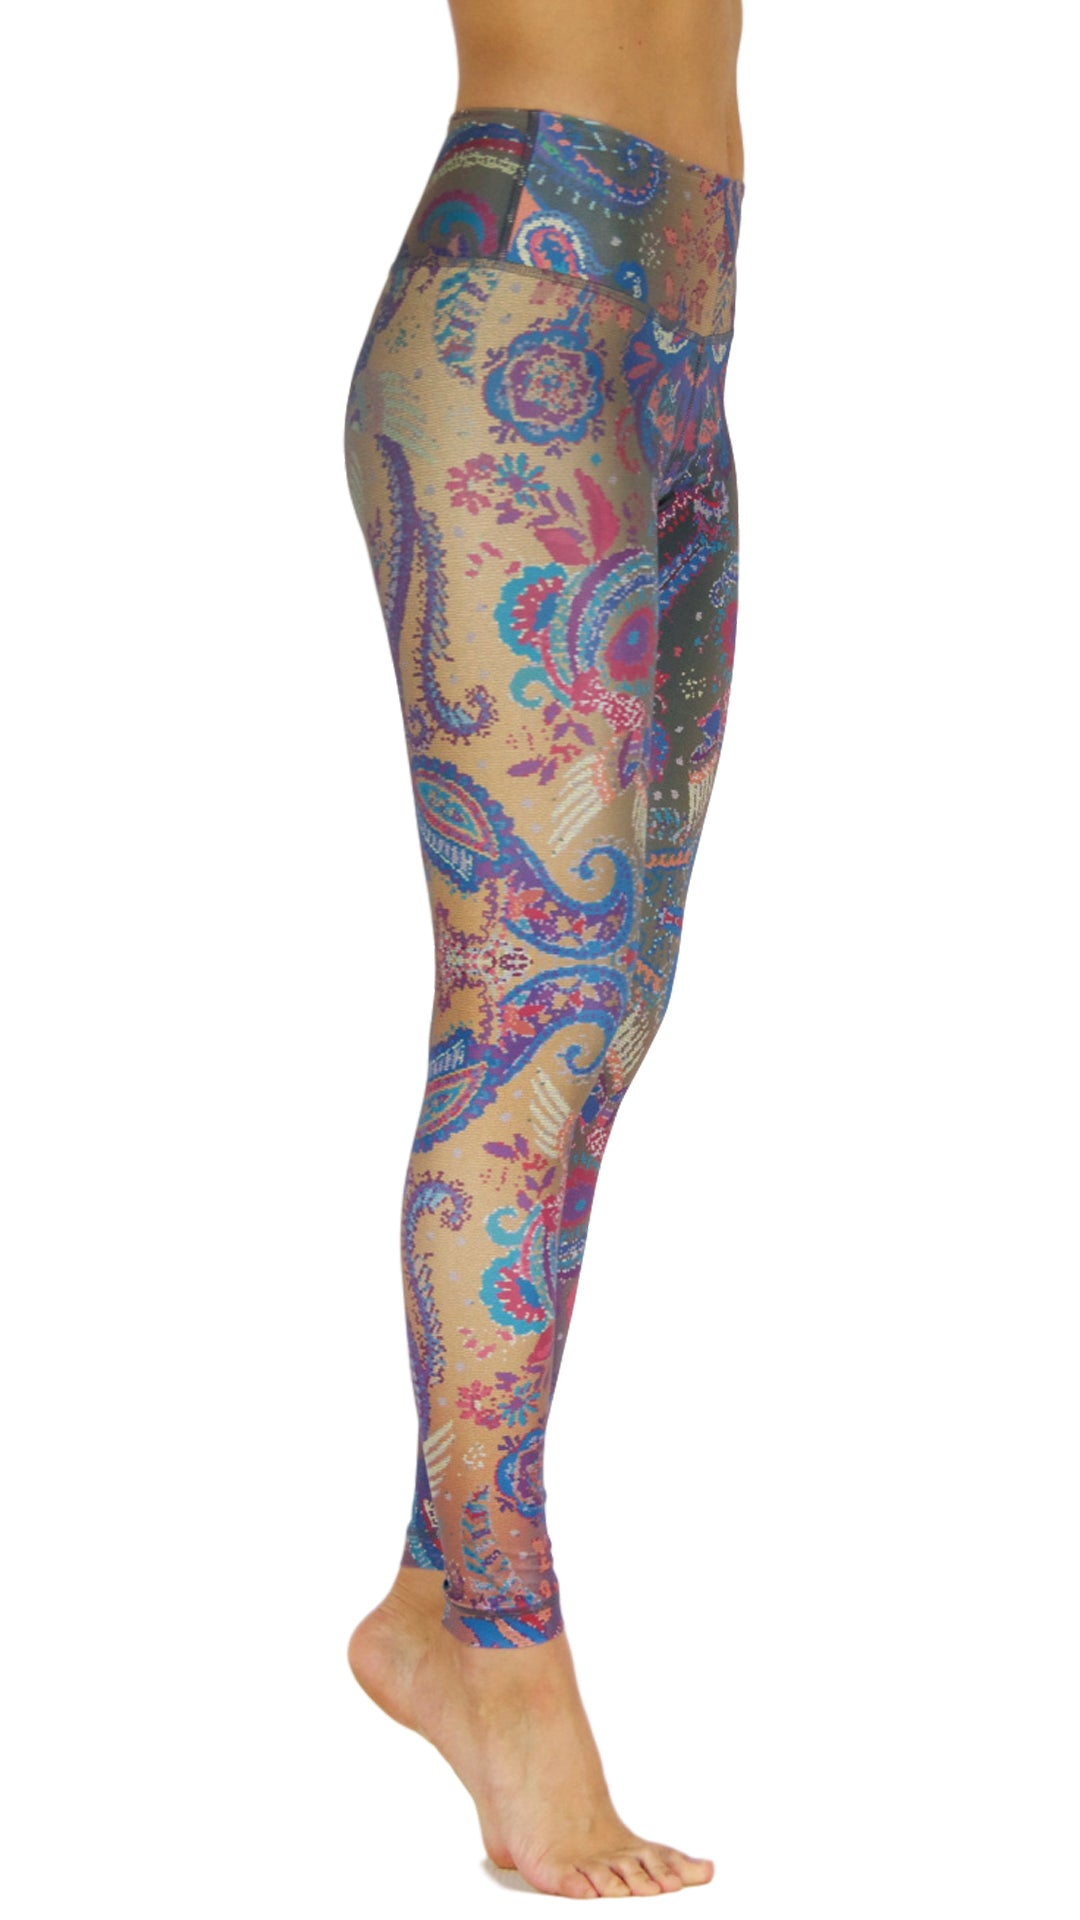 Carnivalista by Niyama - High Quality, Yoga Legging for Movement Artists.